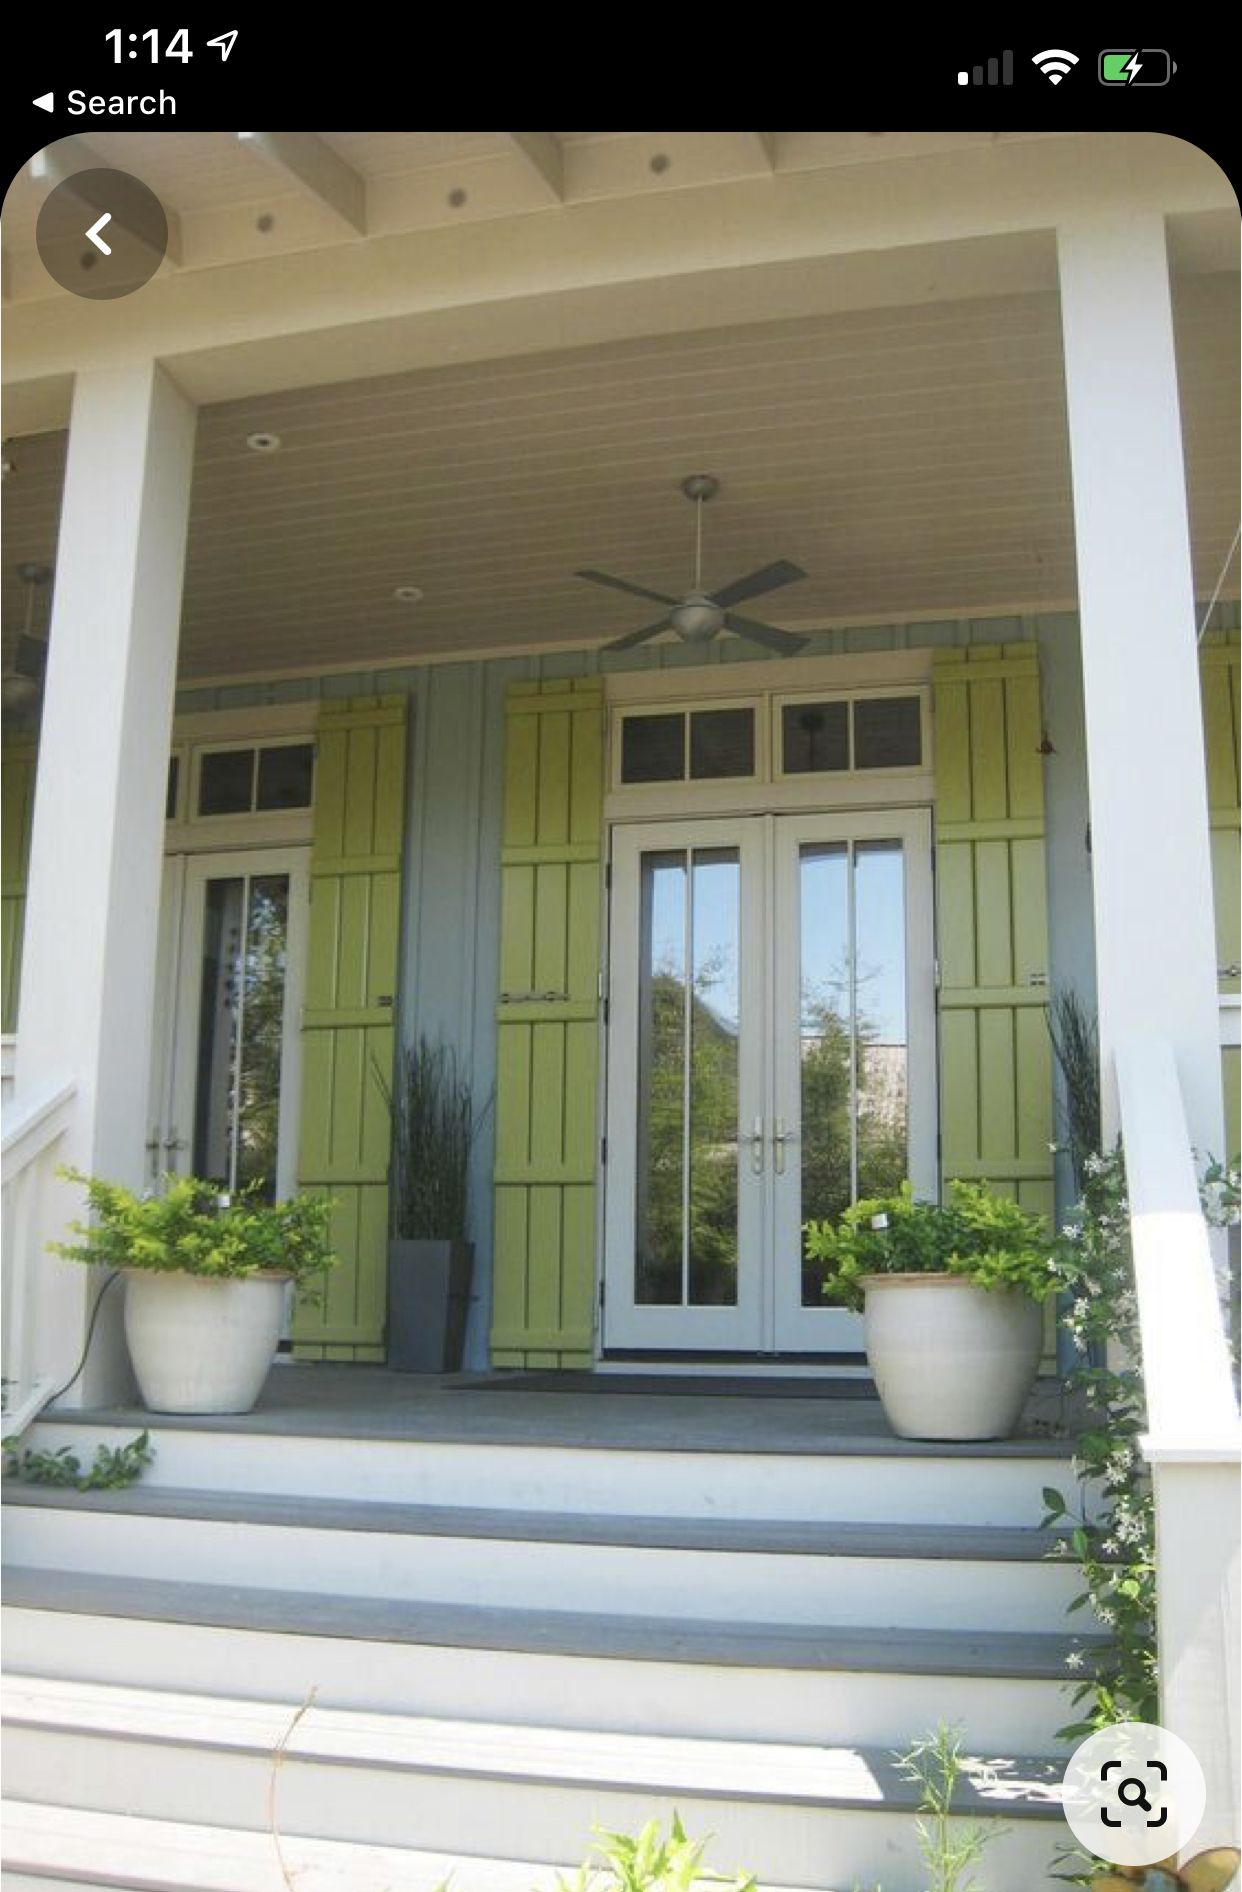 Pin by Jenni Care Theriault on Beach House Windows & Doors